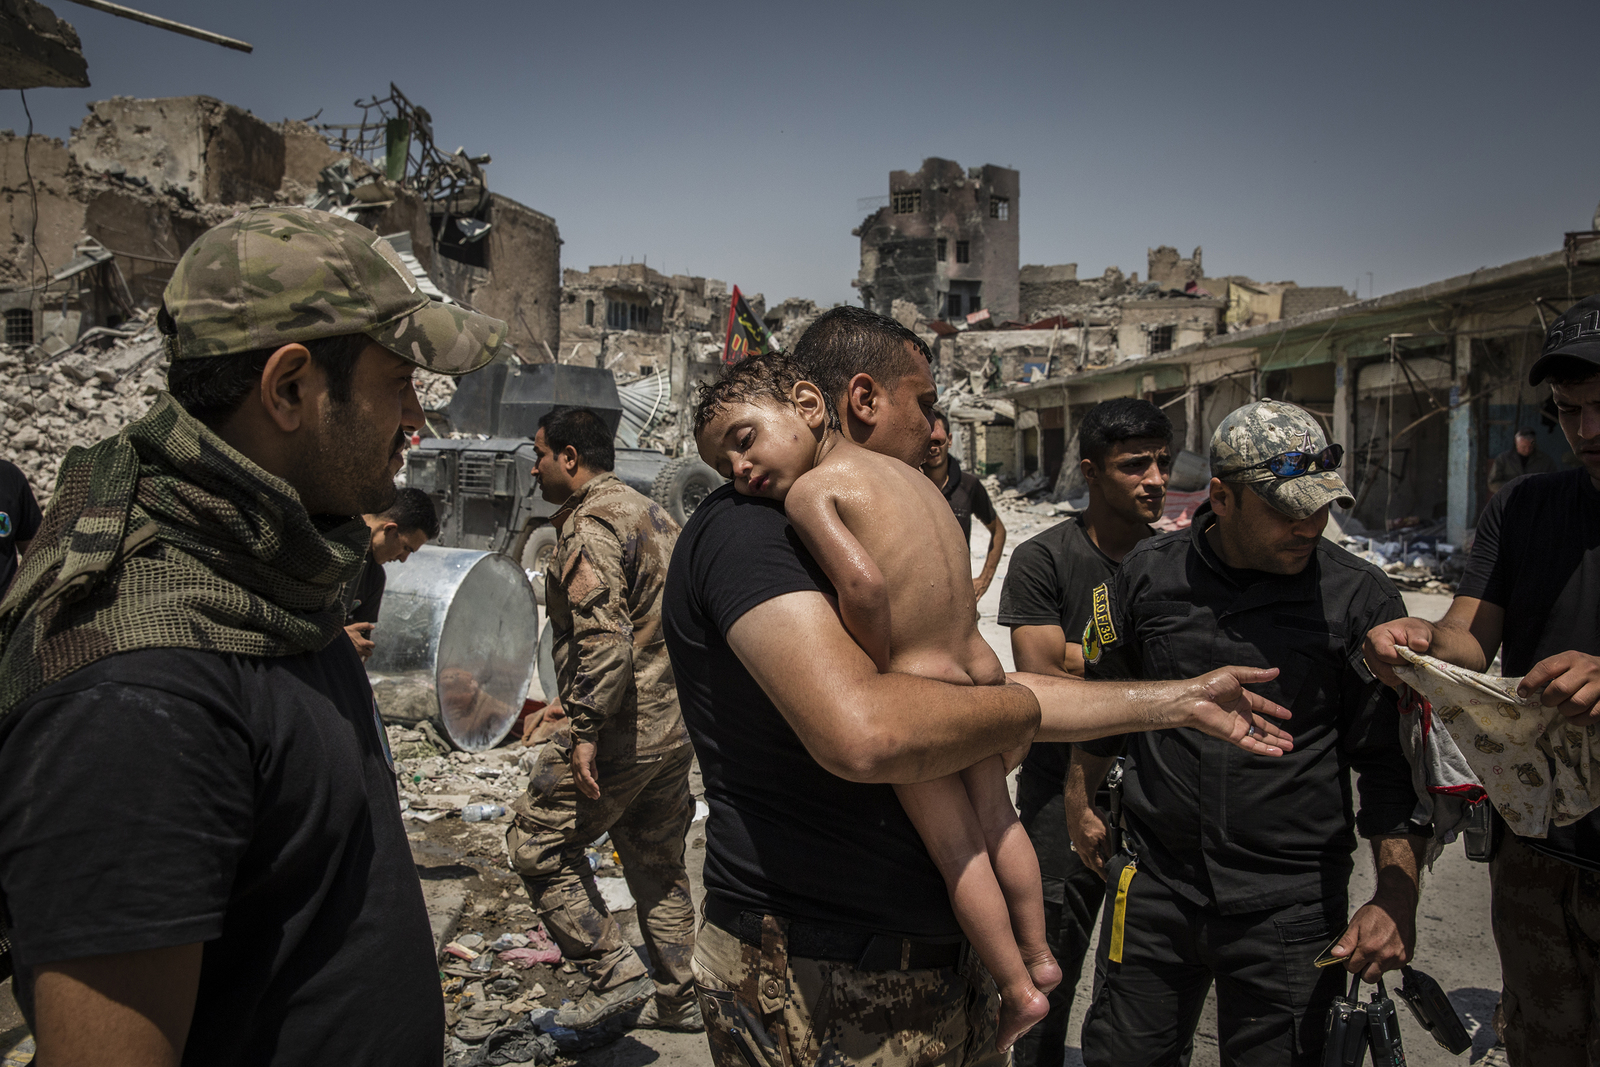 An unidentified young boy who was carried out of the last ISIS controlled area in the Old City by a man suspected of being a militant is cared for by Iraqi Special Forces soldiers. The soldiers suspected the man had used the boy as a human shield in order to try and escape as he did not know the child's name and claimed he had just found him alone in the street. One of the soldiers agreed to adopt the boy given that they knew nothing about him and he didn't speak. 12/07/2017